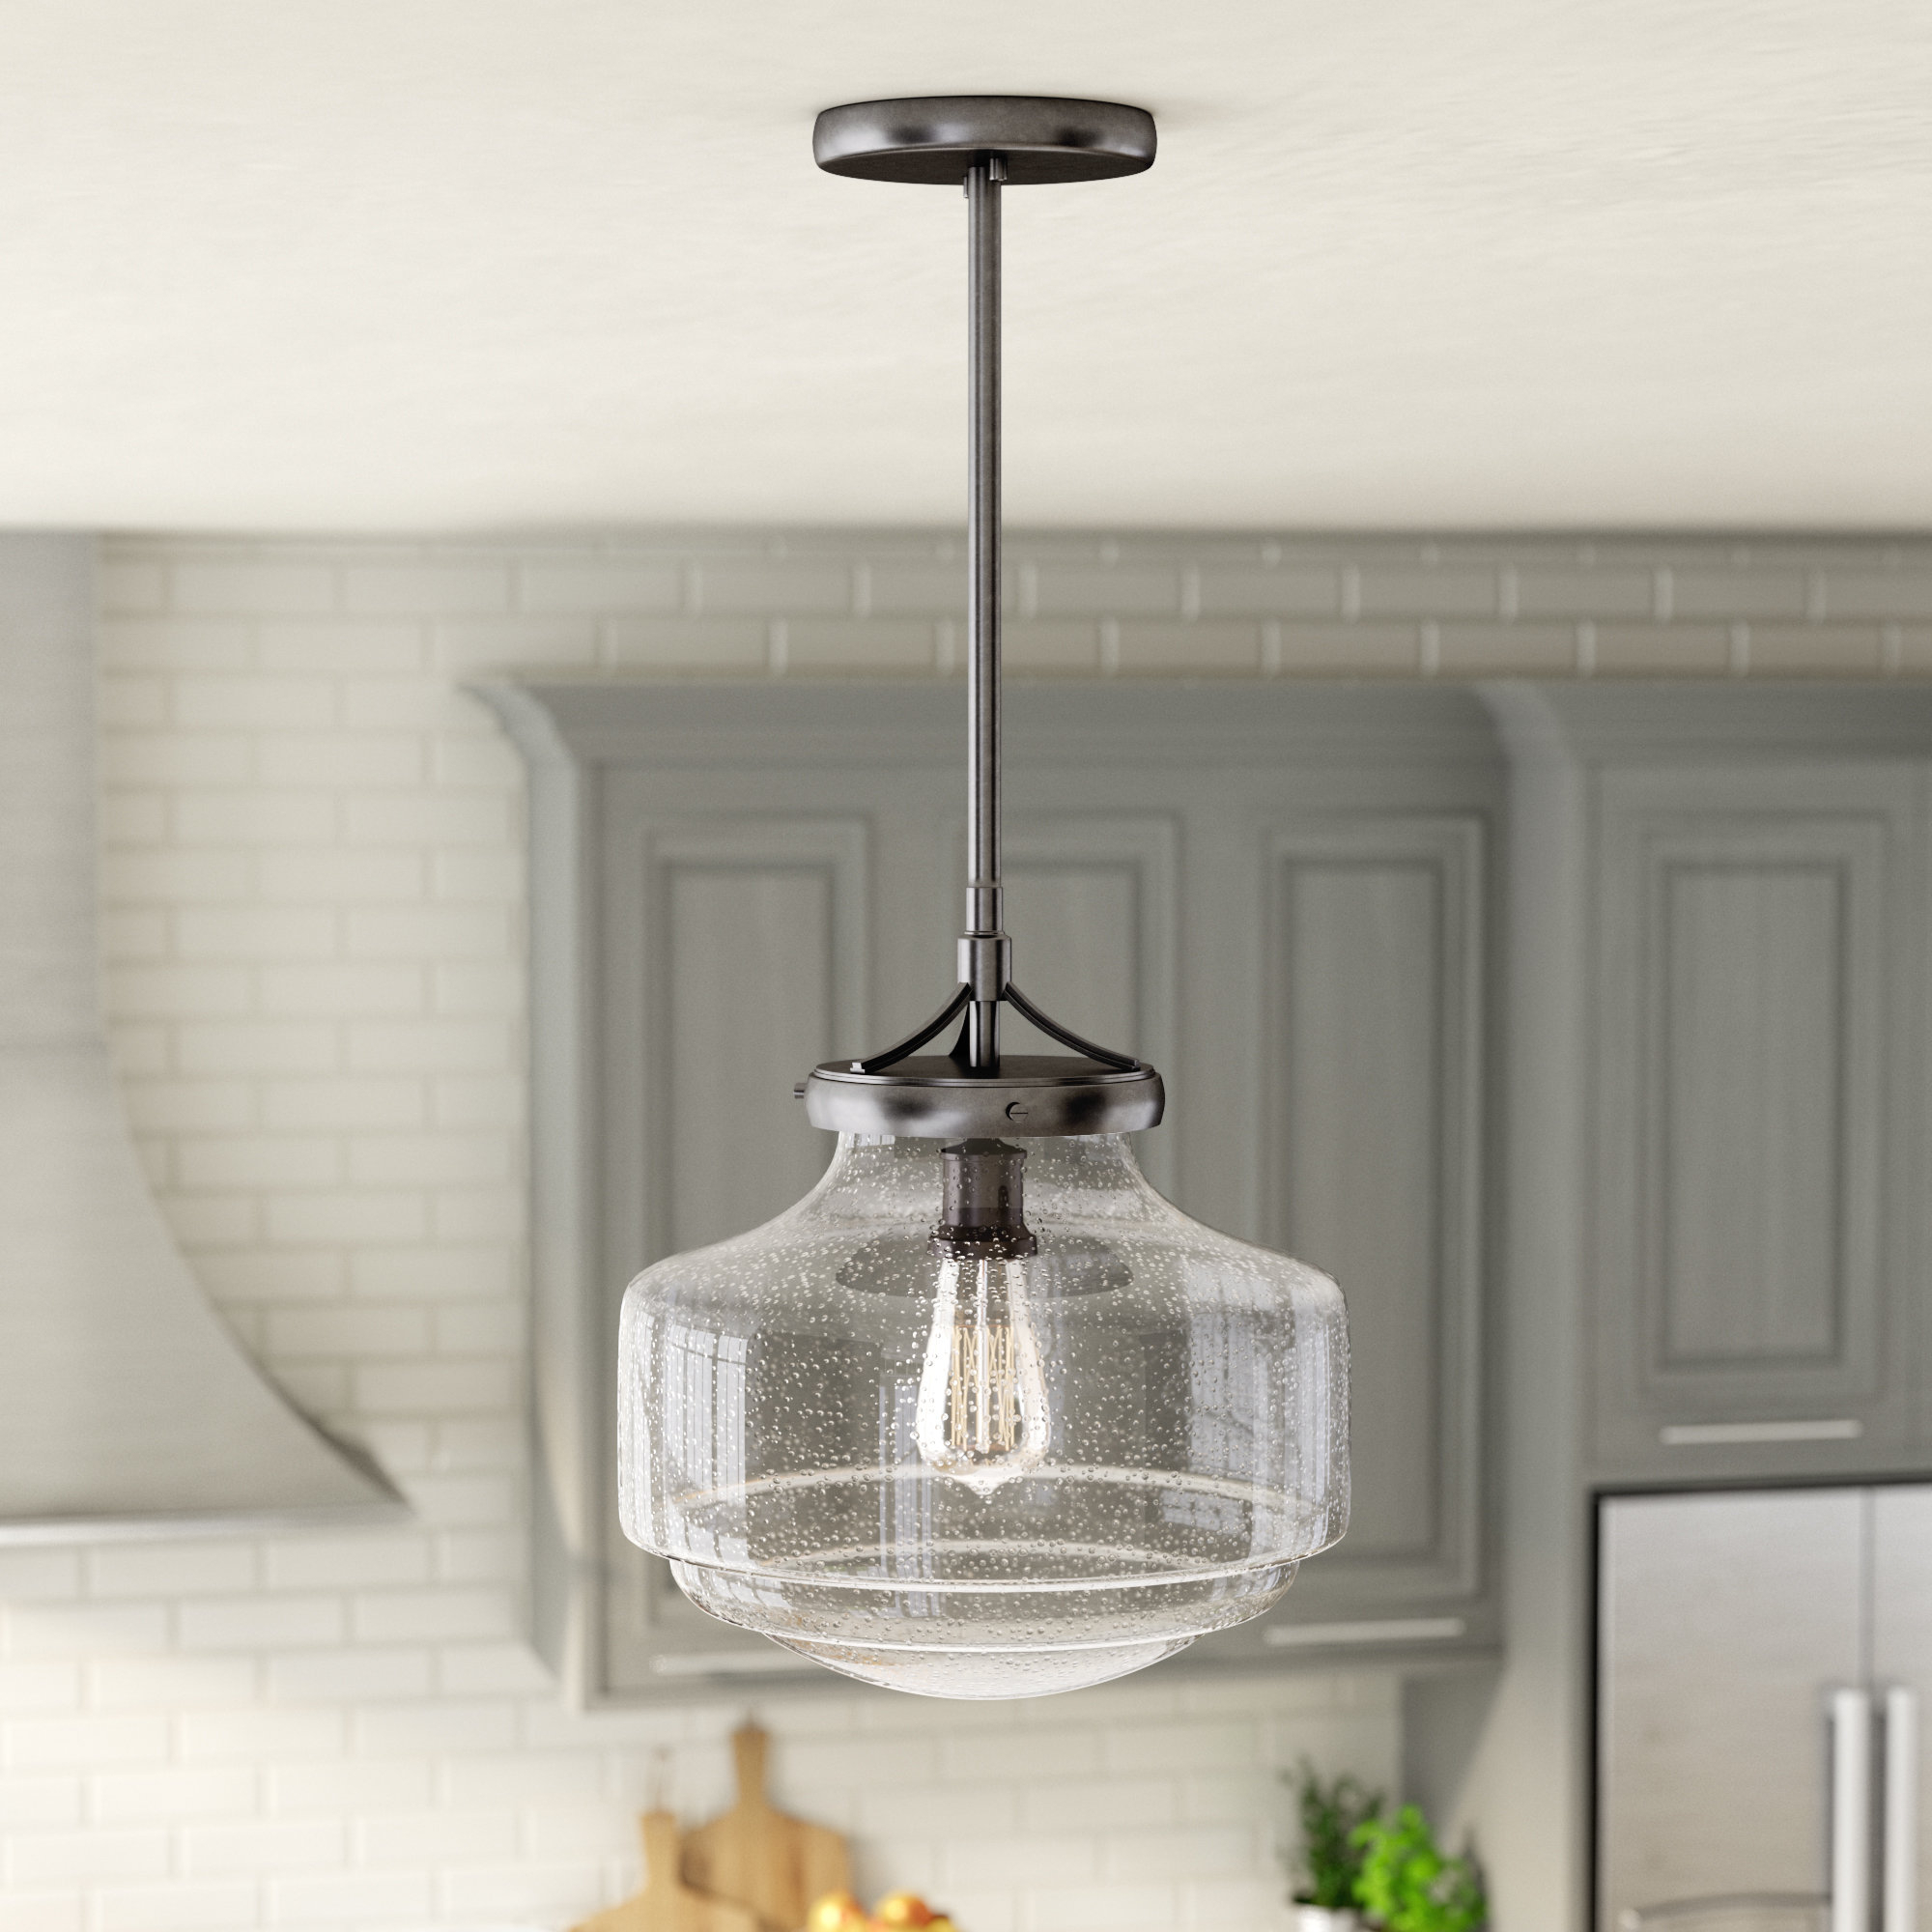 Laurel Foundry Modern Farmhouse Marybeth 1 Light Schoolhouse Within Nadine 1 Light Single Schoolhouse Pendants (View 24 of 30)